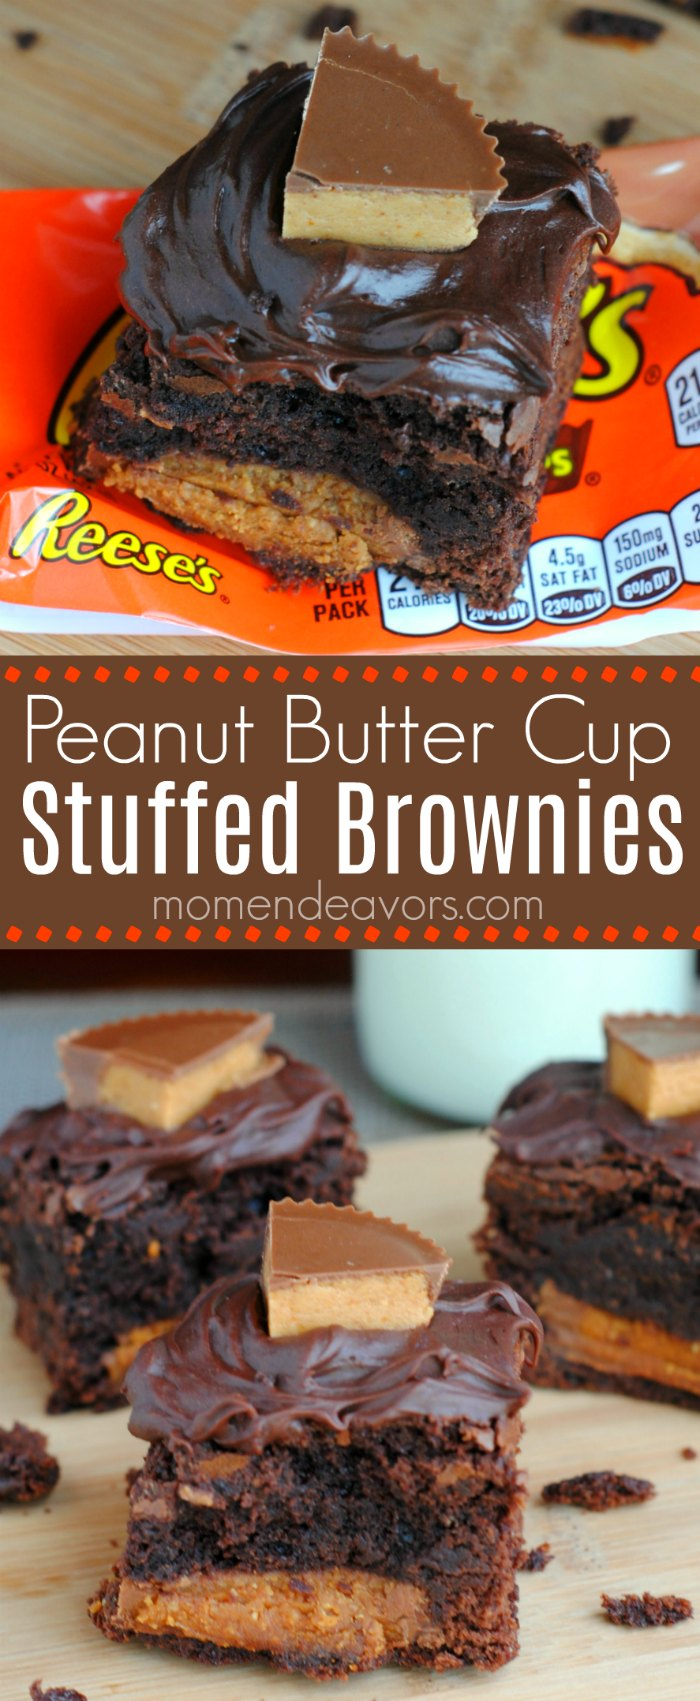 Reese's Peanut Butter Cup Stuffed Brownies Recipe